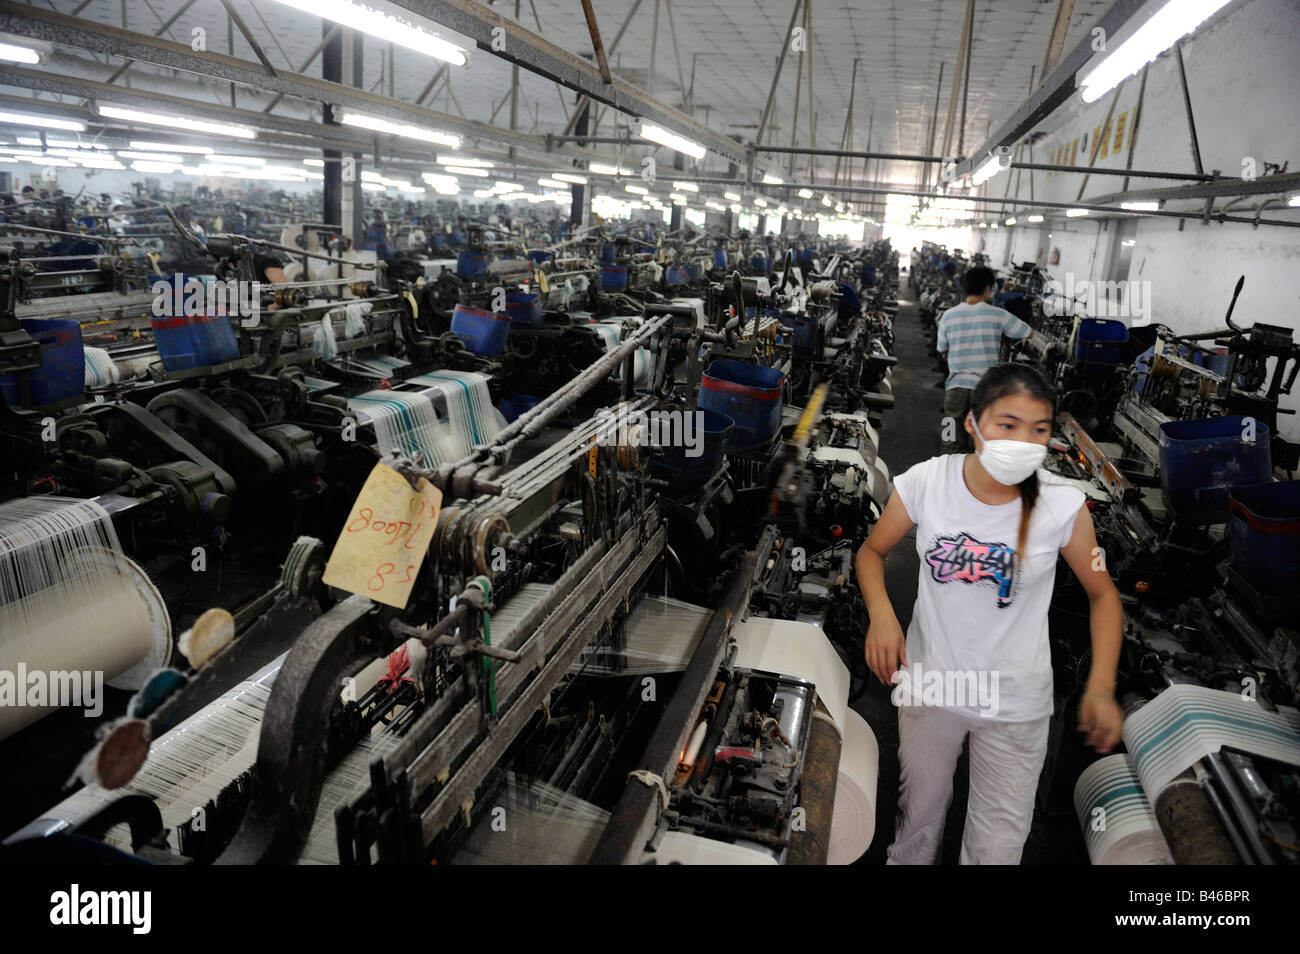 6a5b9979954ff Factory Industry Workers Machines Stock Photos   Factory Industry ...